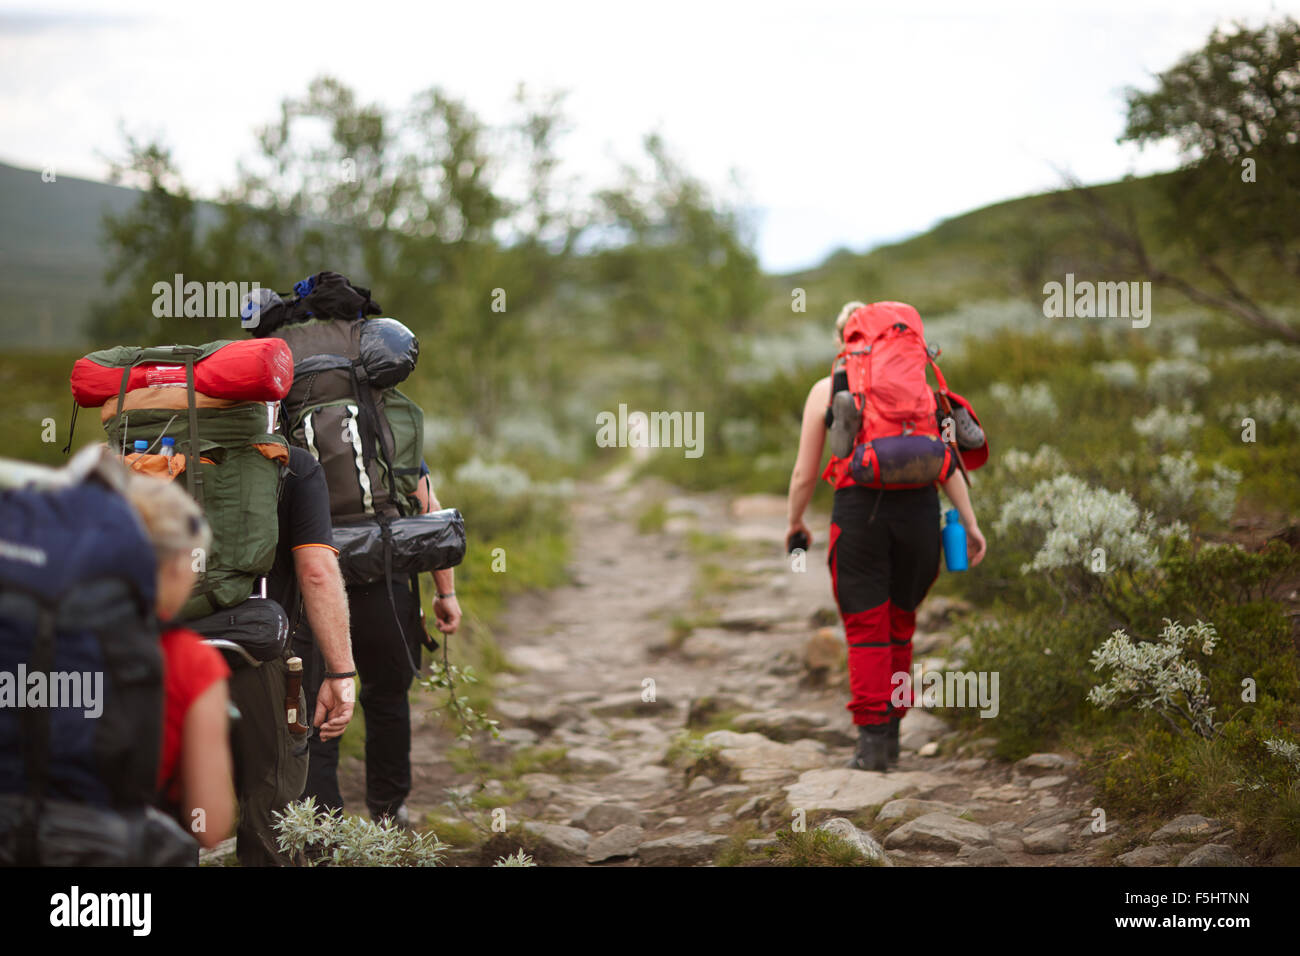 Sweden, Jamtland, People hiking with backpacks - Stock Image